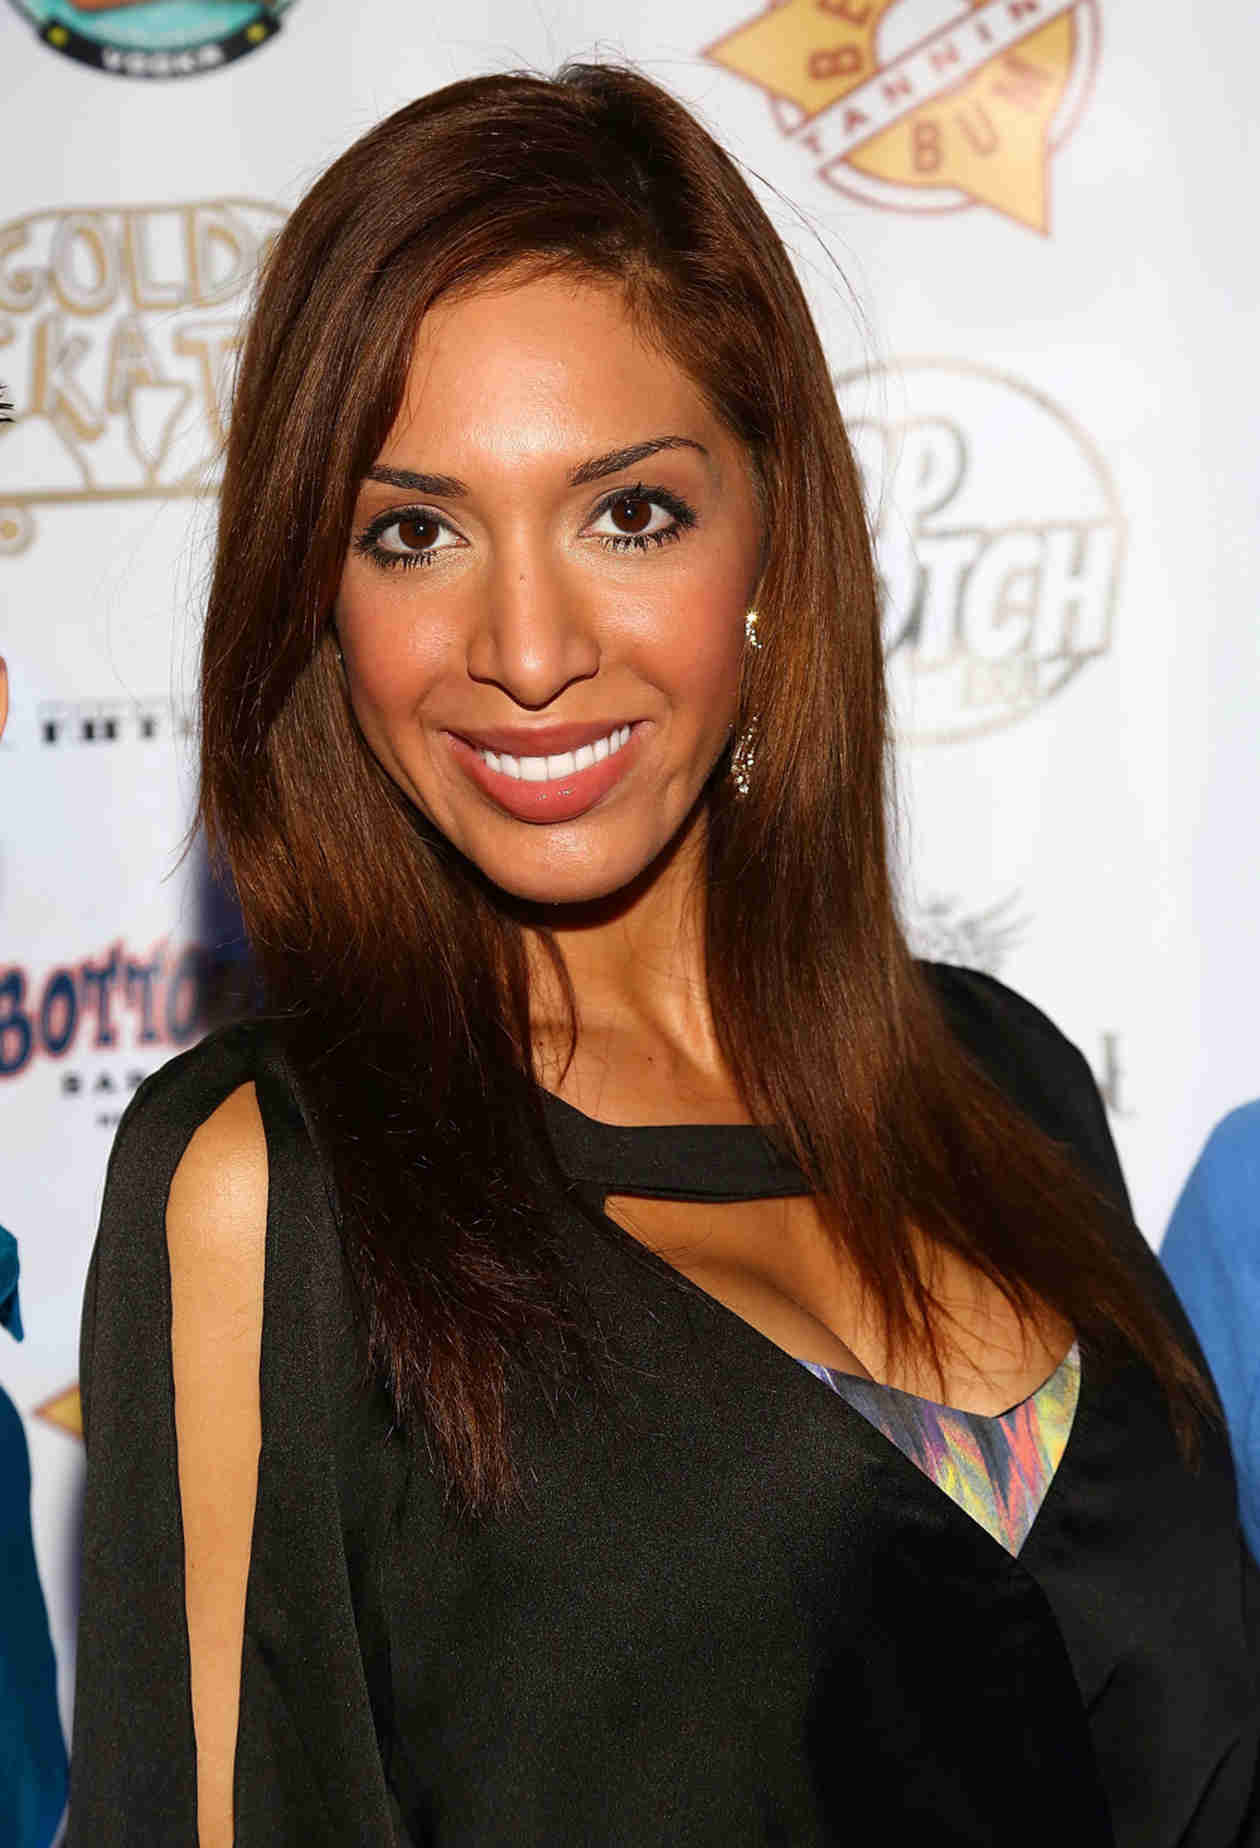 Does Farrah Abraham Want Her Erotic Novels Adapted into a Film? — Exclusive